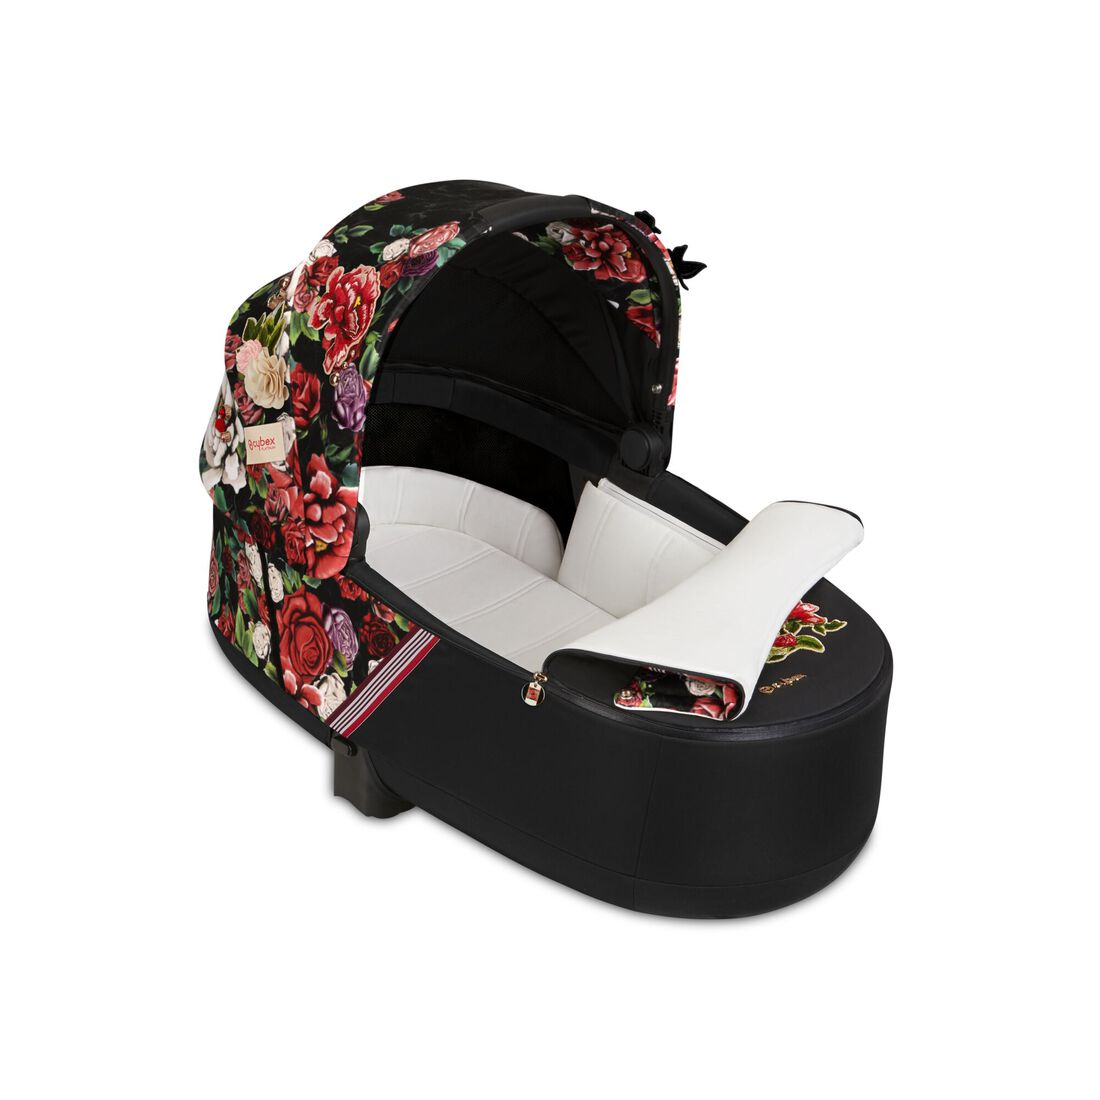 CYBEX Priam Lux Carry Cot - Spring Blossom Dark in Spring Blossom Dark large image number 2